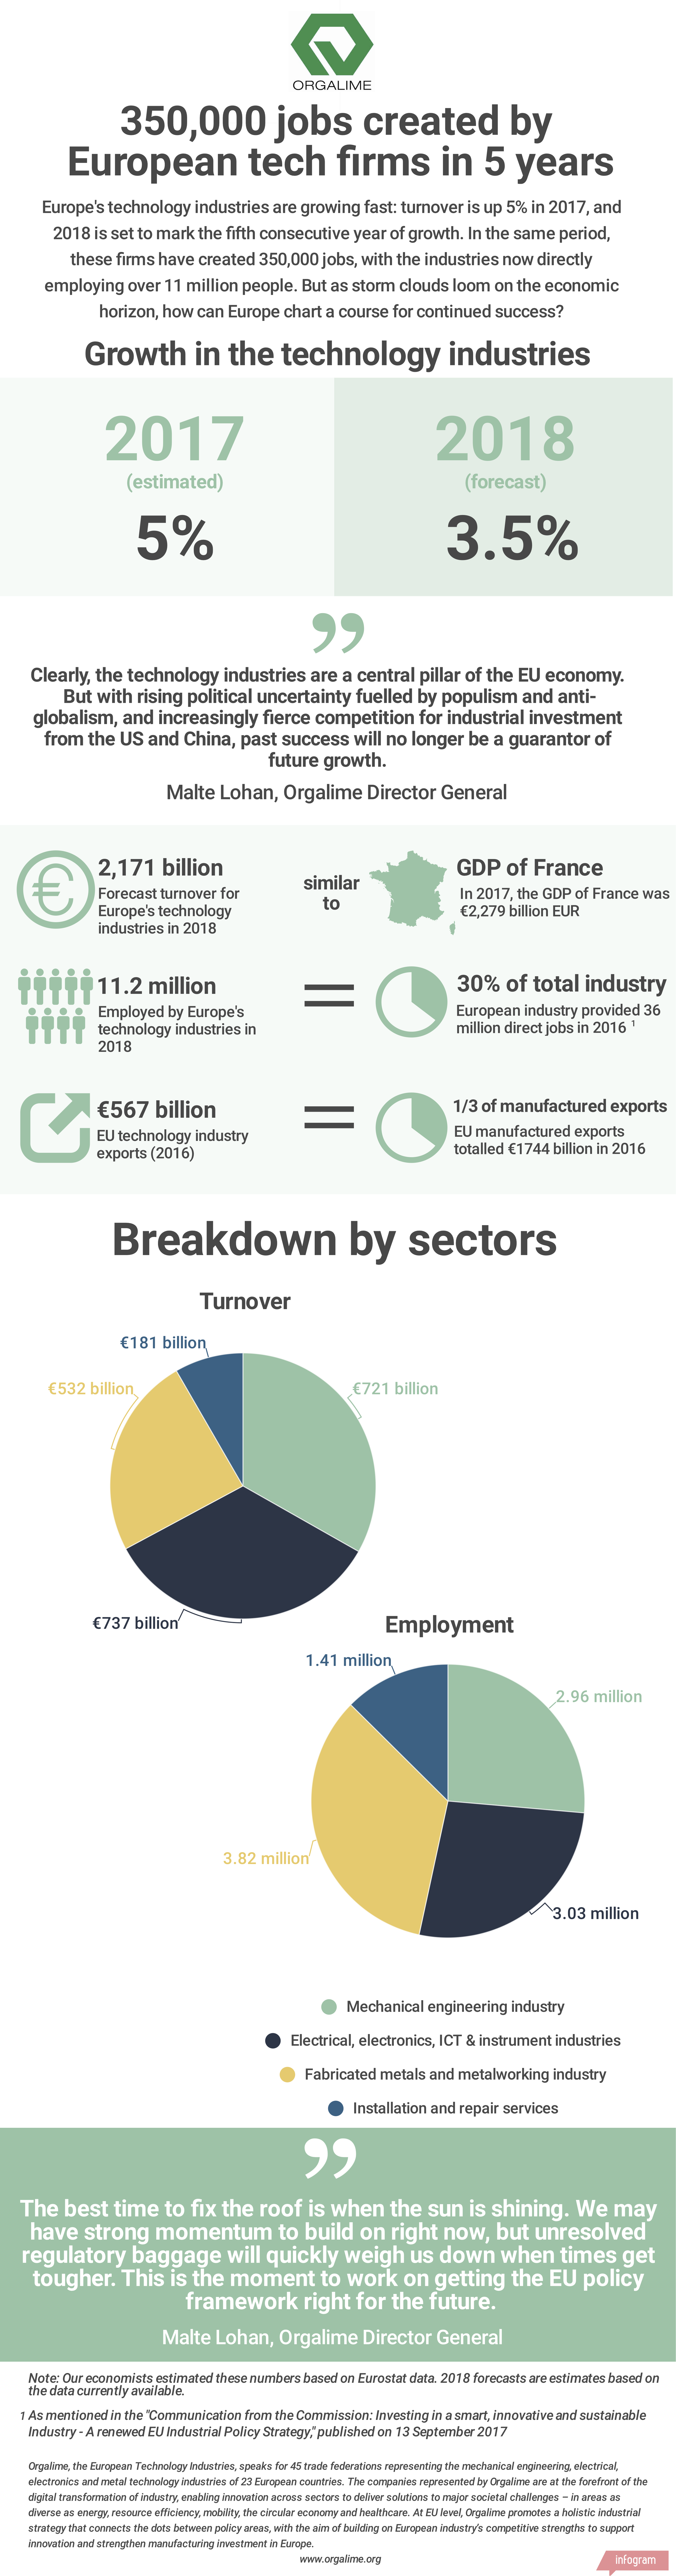 350,000 jobs created by European tech firms in five years